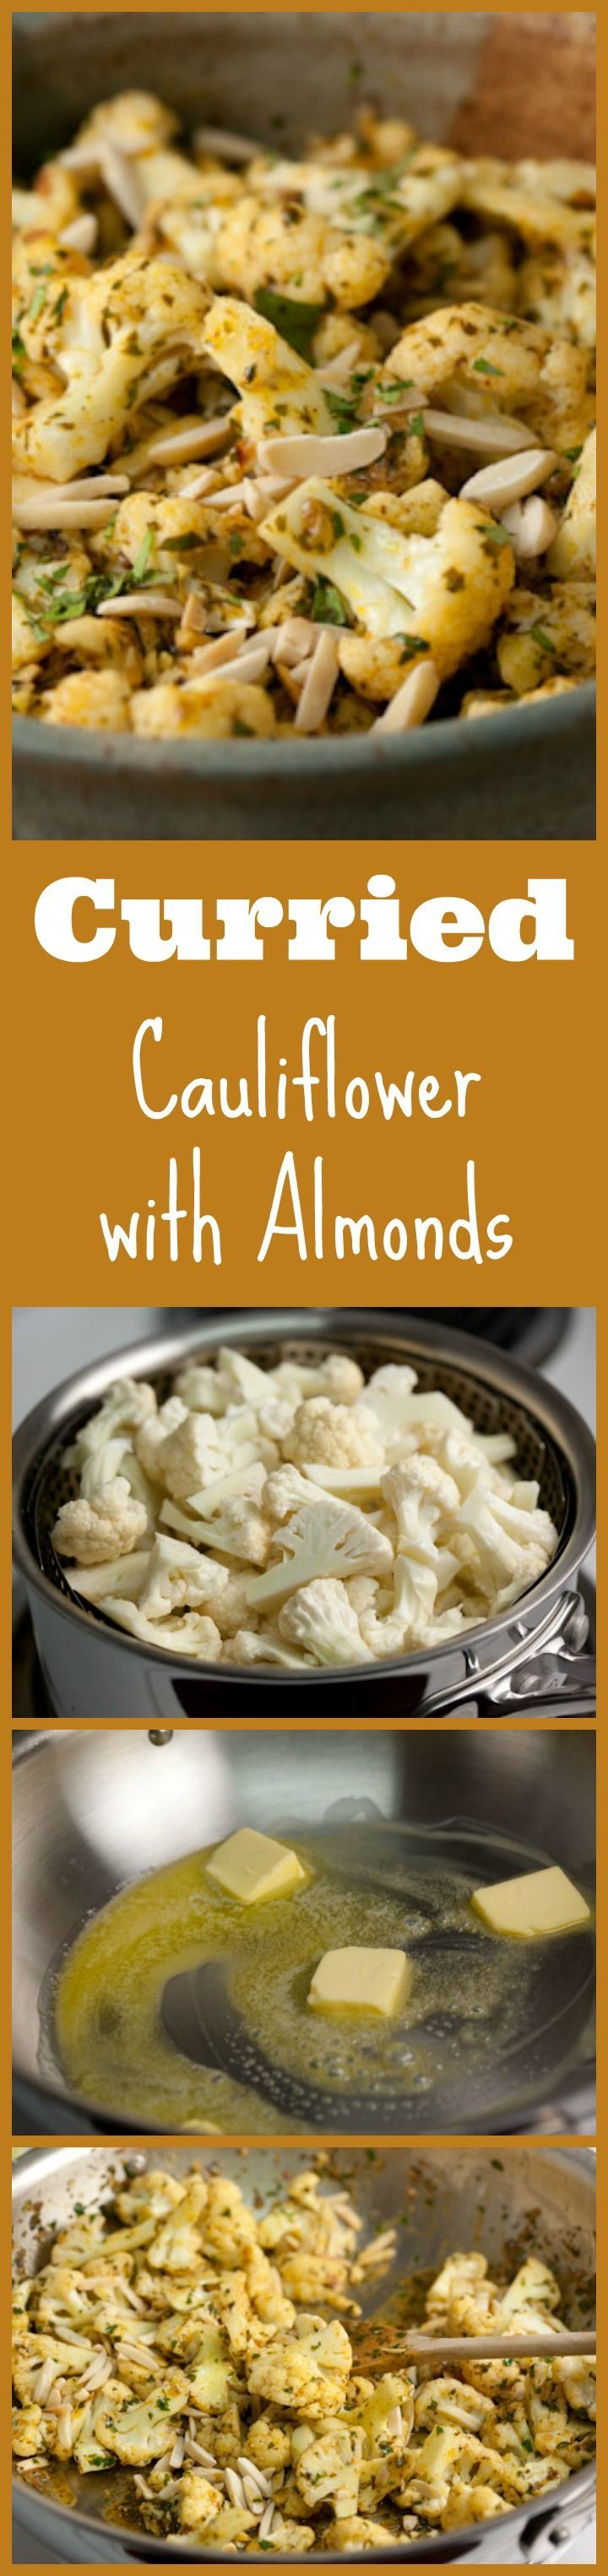 An easy side dish with lots of flavor. This curried cauliflower with almonds is delicious, simple to make, seasonal, and low carb!